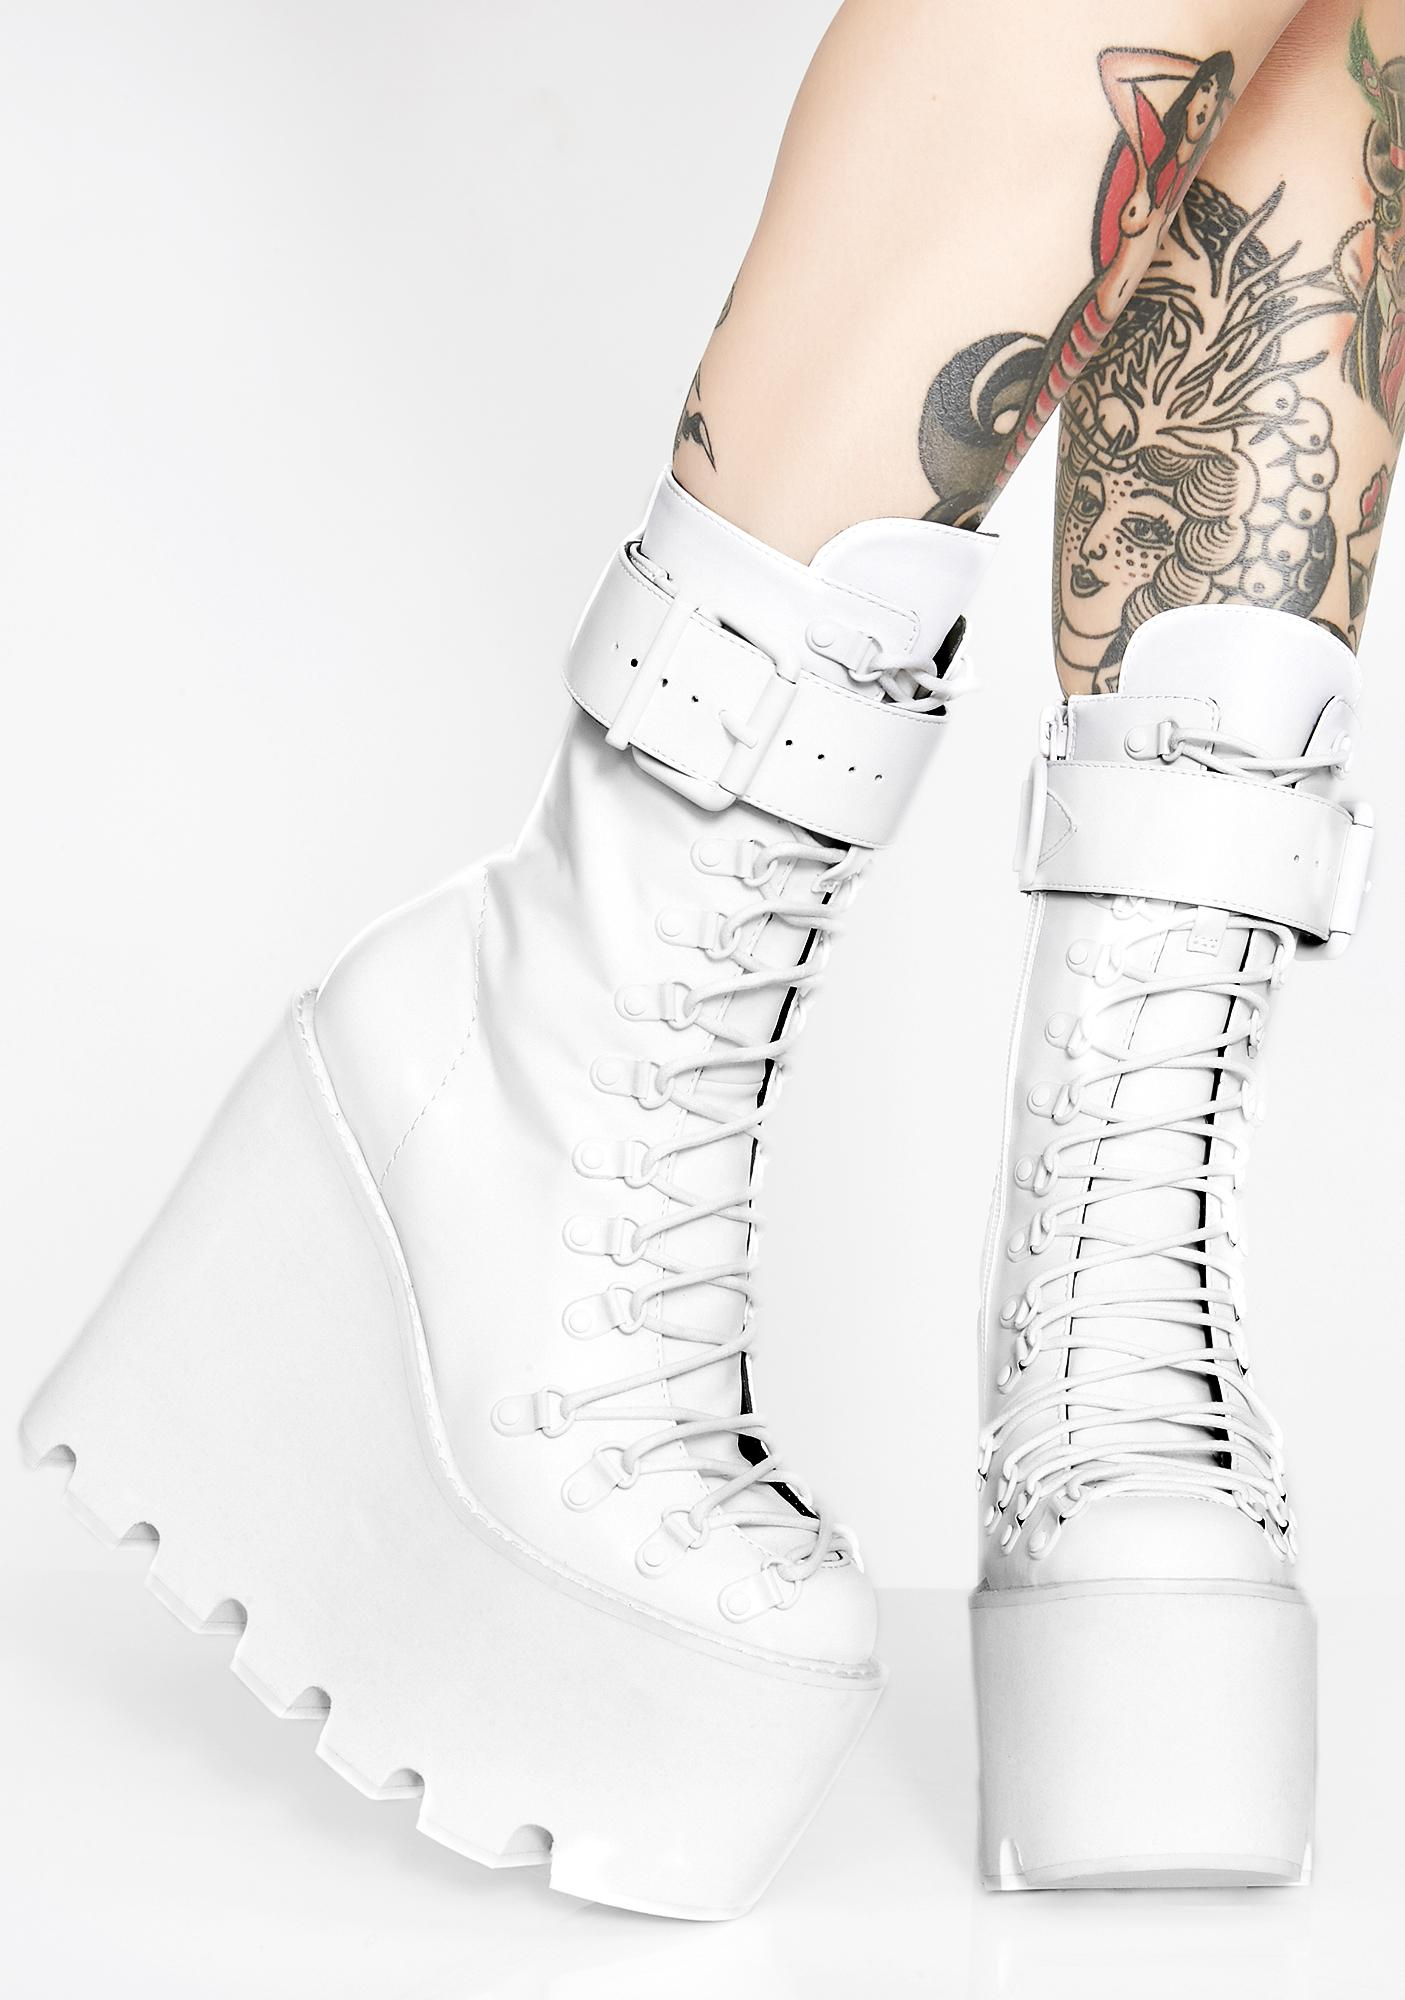 Club Exx Pure Traitor Boots